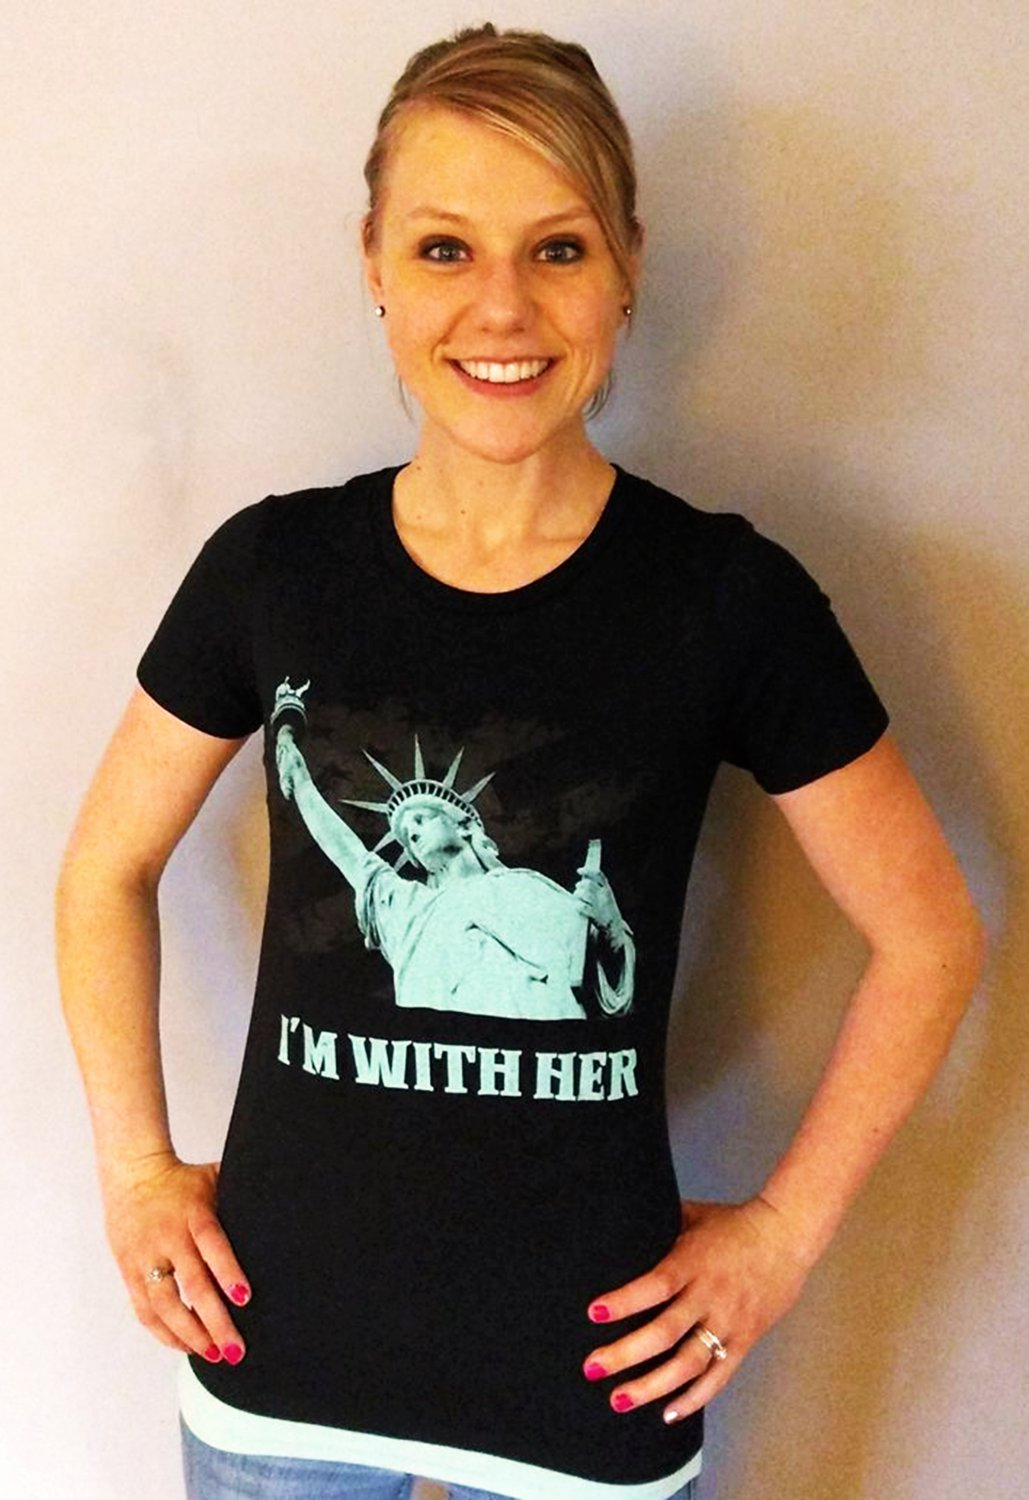 I'M WITH HER Lady Liberty - Women's T Shirt SIZE XL